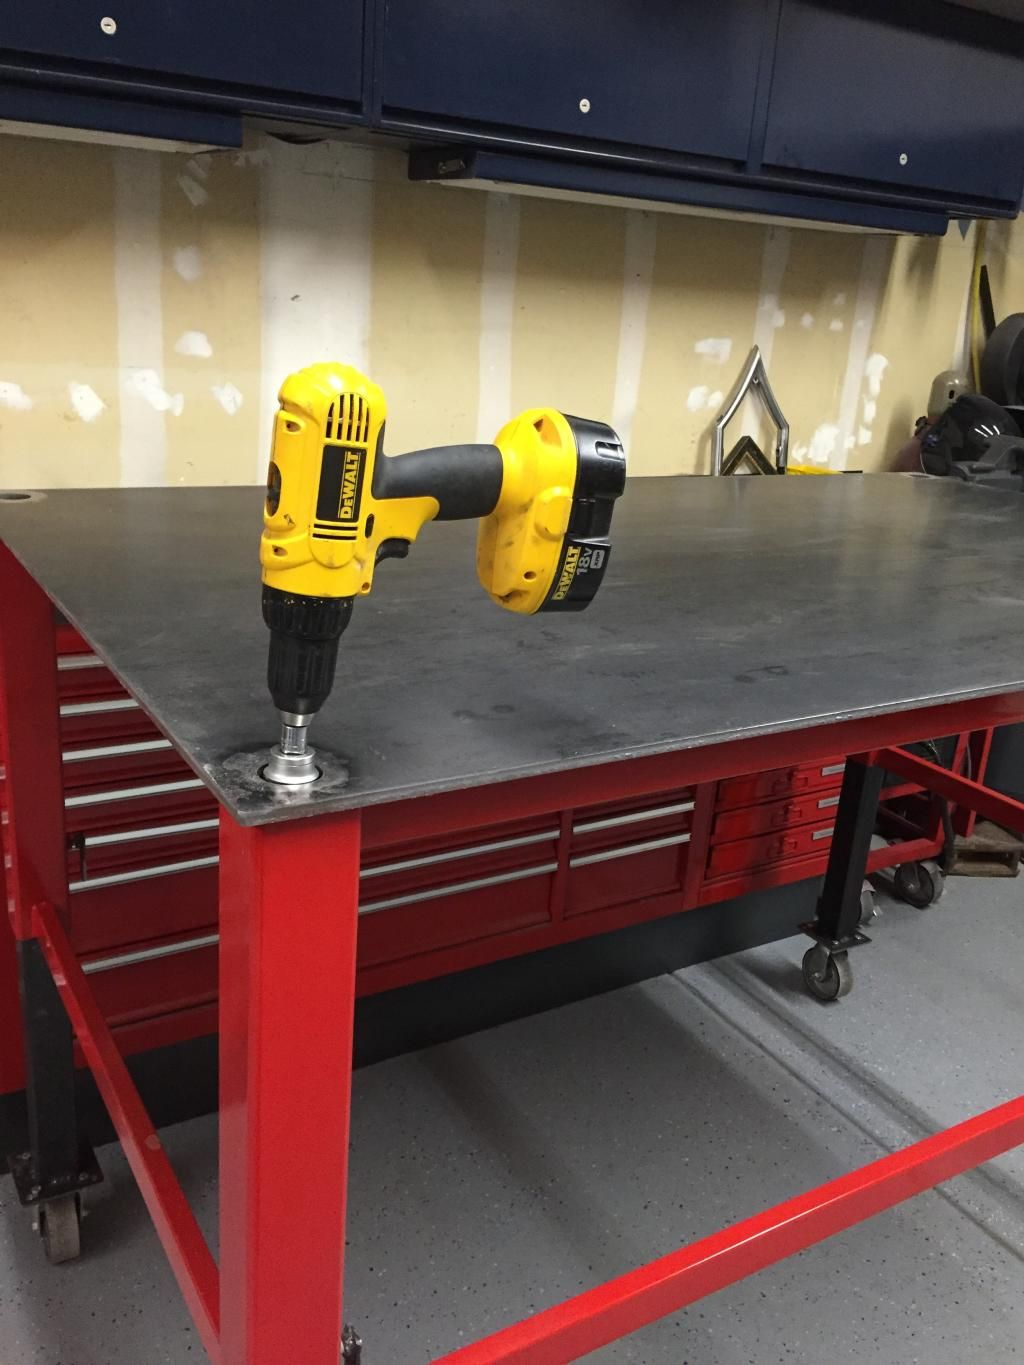 Charming Adjustable Welding/shop Table   The Garage Journal Board